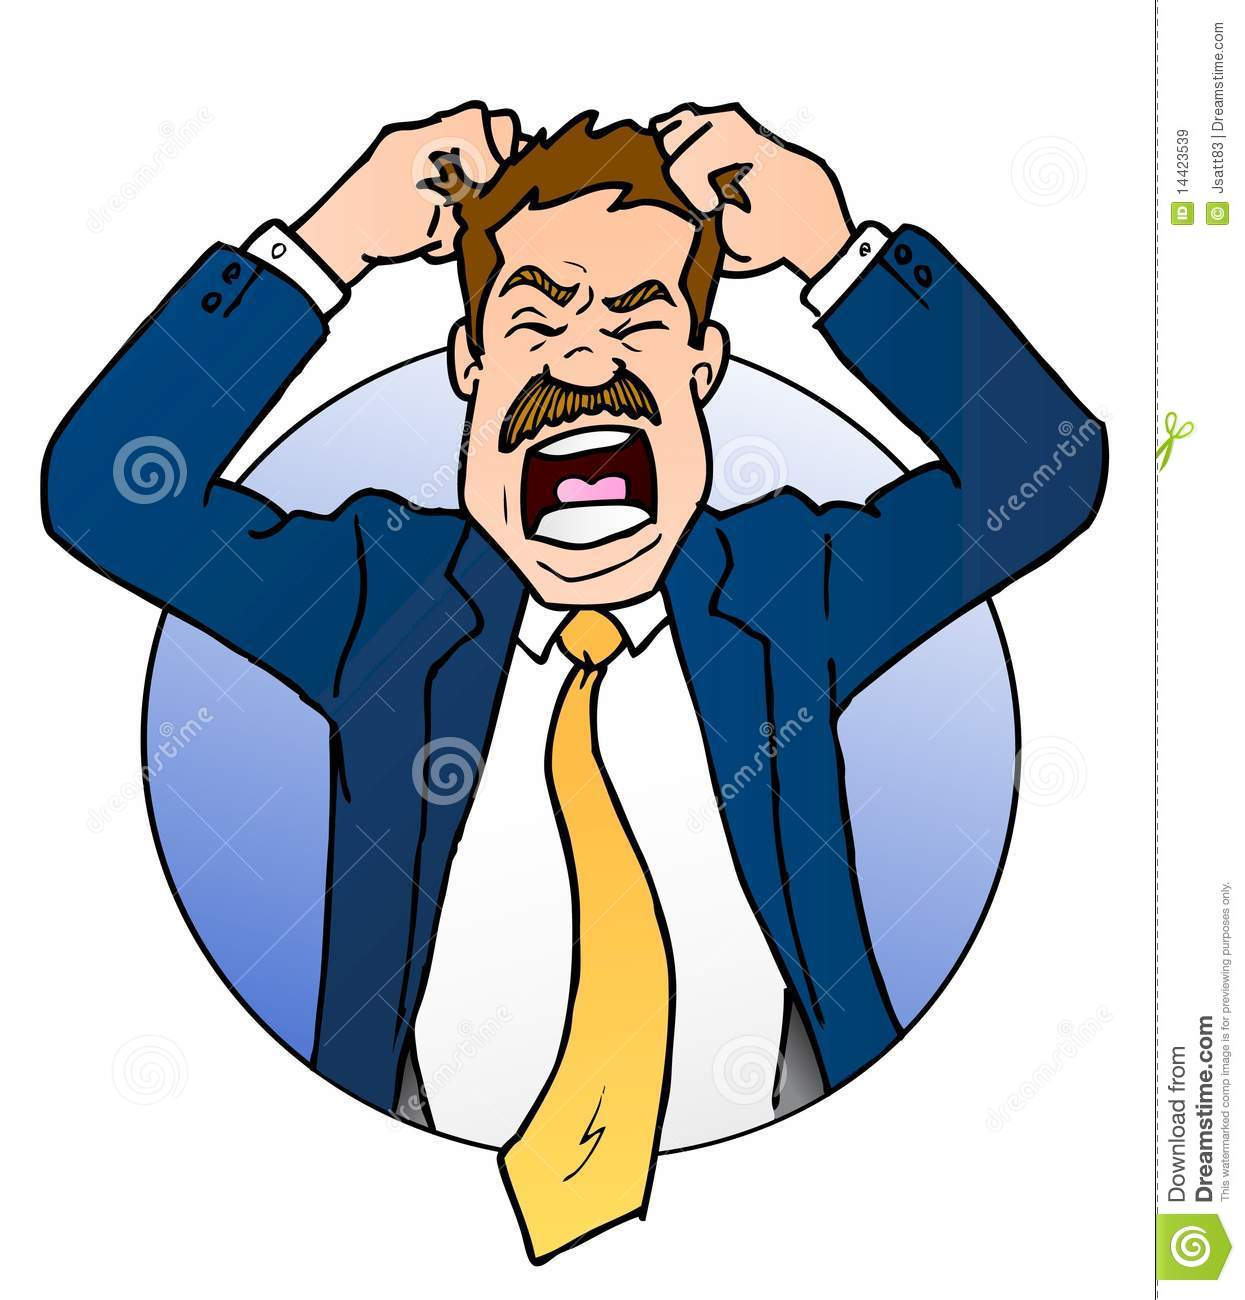 Free clipart person pulling their hair out jpg transparent download Cartoon Pulling Hair Out Group with 75+ items jpg transparent download